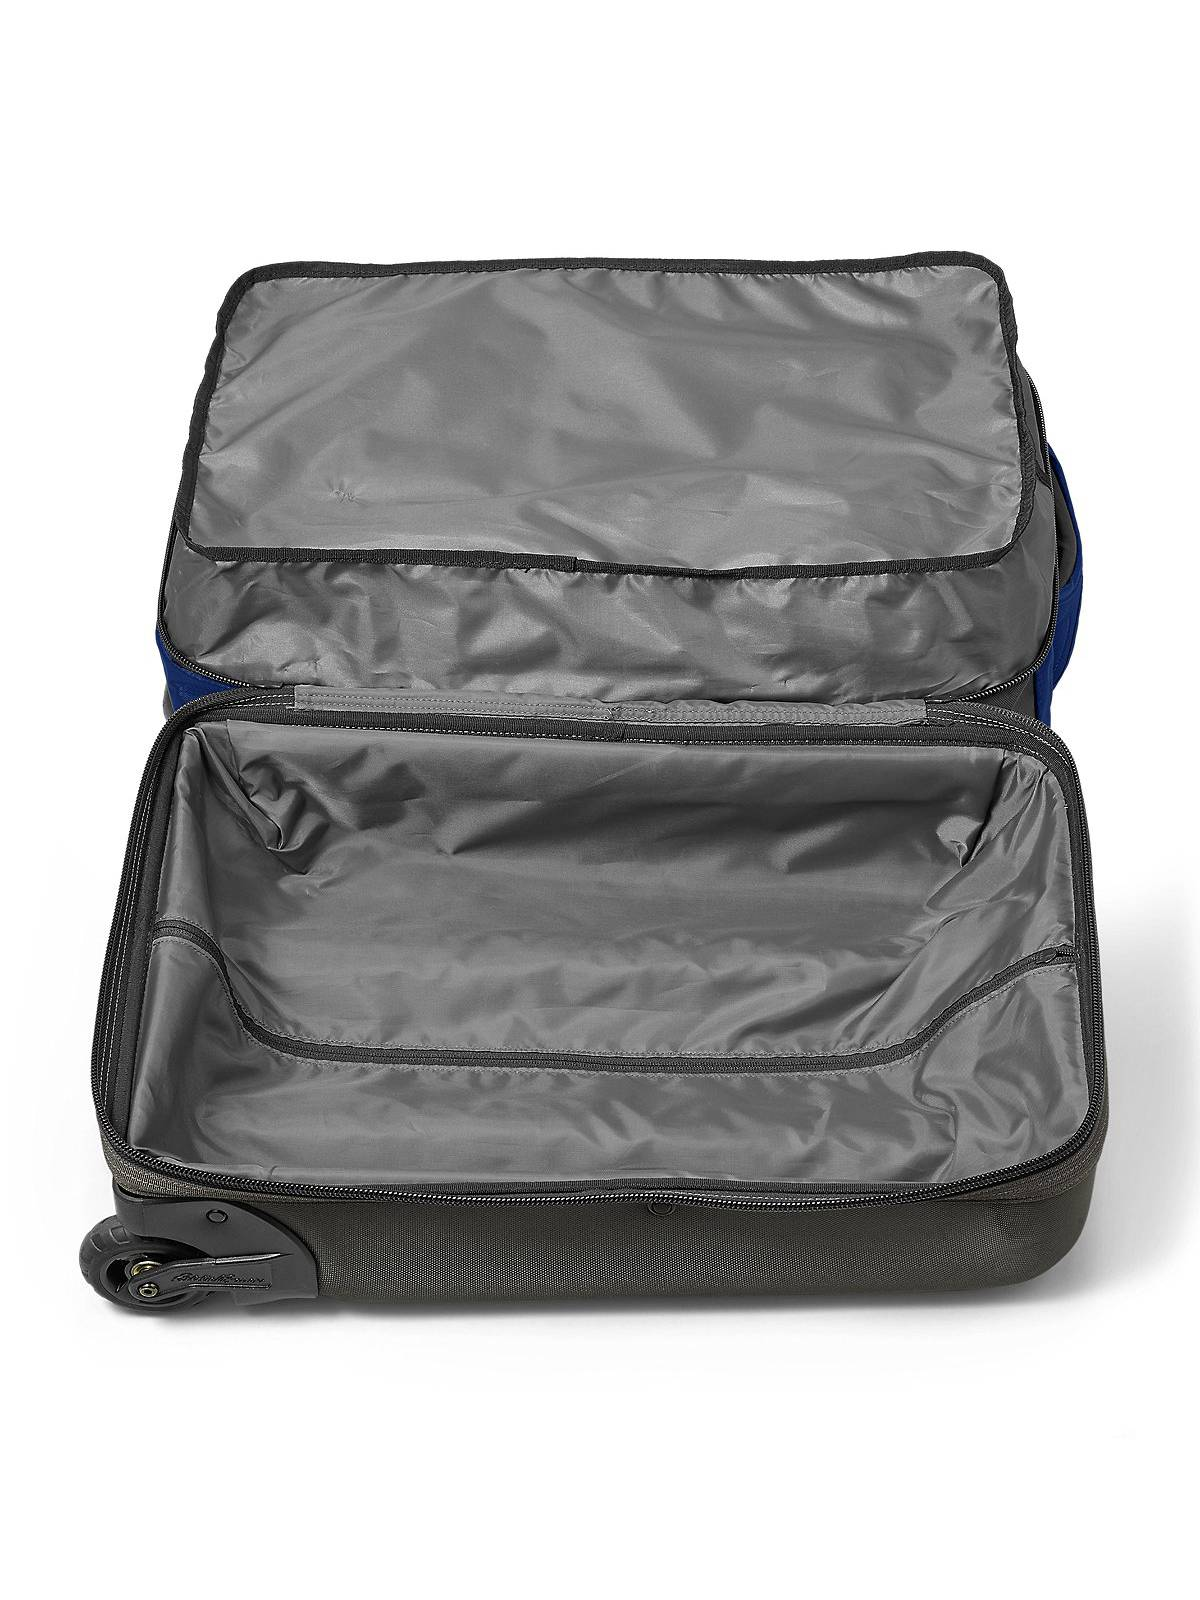 Eddie Bauer Unisex-Adult Expedition Drop Bottom Rolling Duffel ... d94a1ac3f8